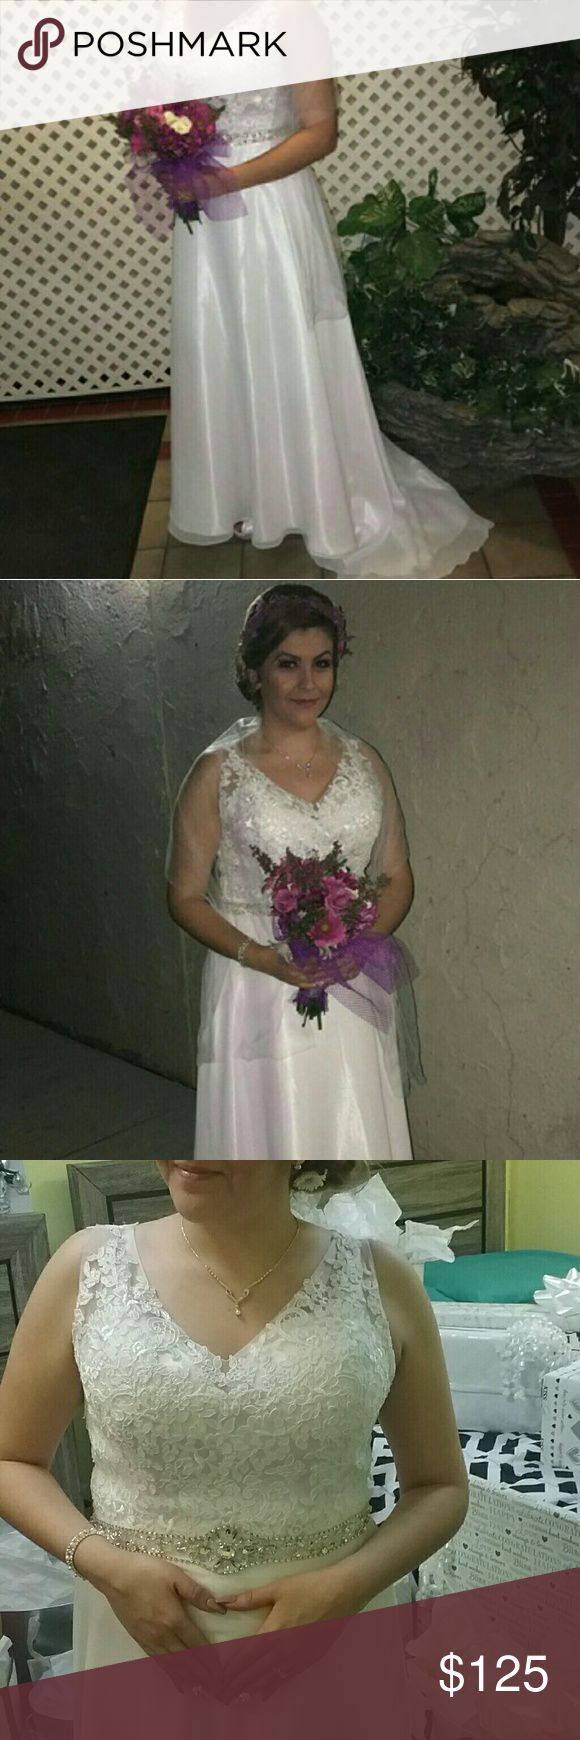 """Formal Wedding Dress Top Laced with beads above Waist all around. Used Once Altrated to fit 5""""8 tall with heels. Zips up from the back. Fits like a Size 10-12. Basically its a Large. Waist 28-30. Bra cups fits 34 B and C. Dress is flowy. Silky and Satin Material. V-neck. Has a Short Court train. No Trades or Price Change. No stains great condition. Dresses Wedding"""